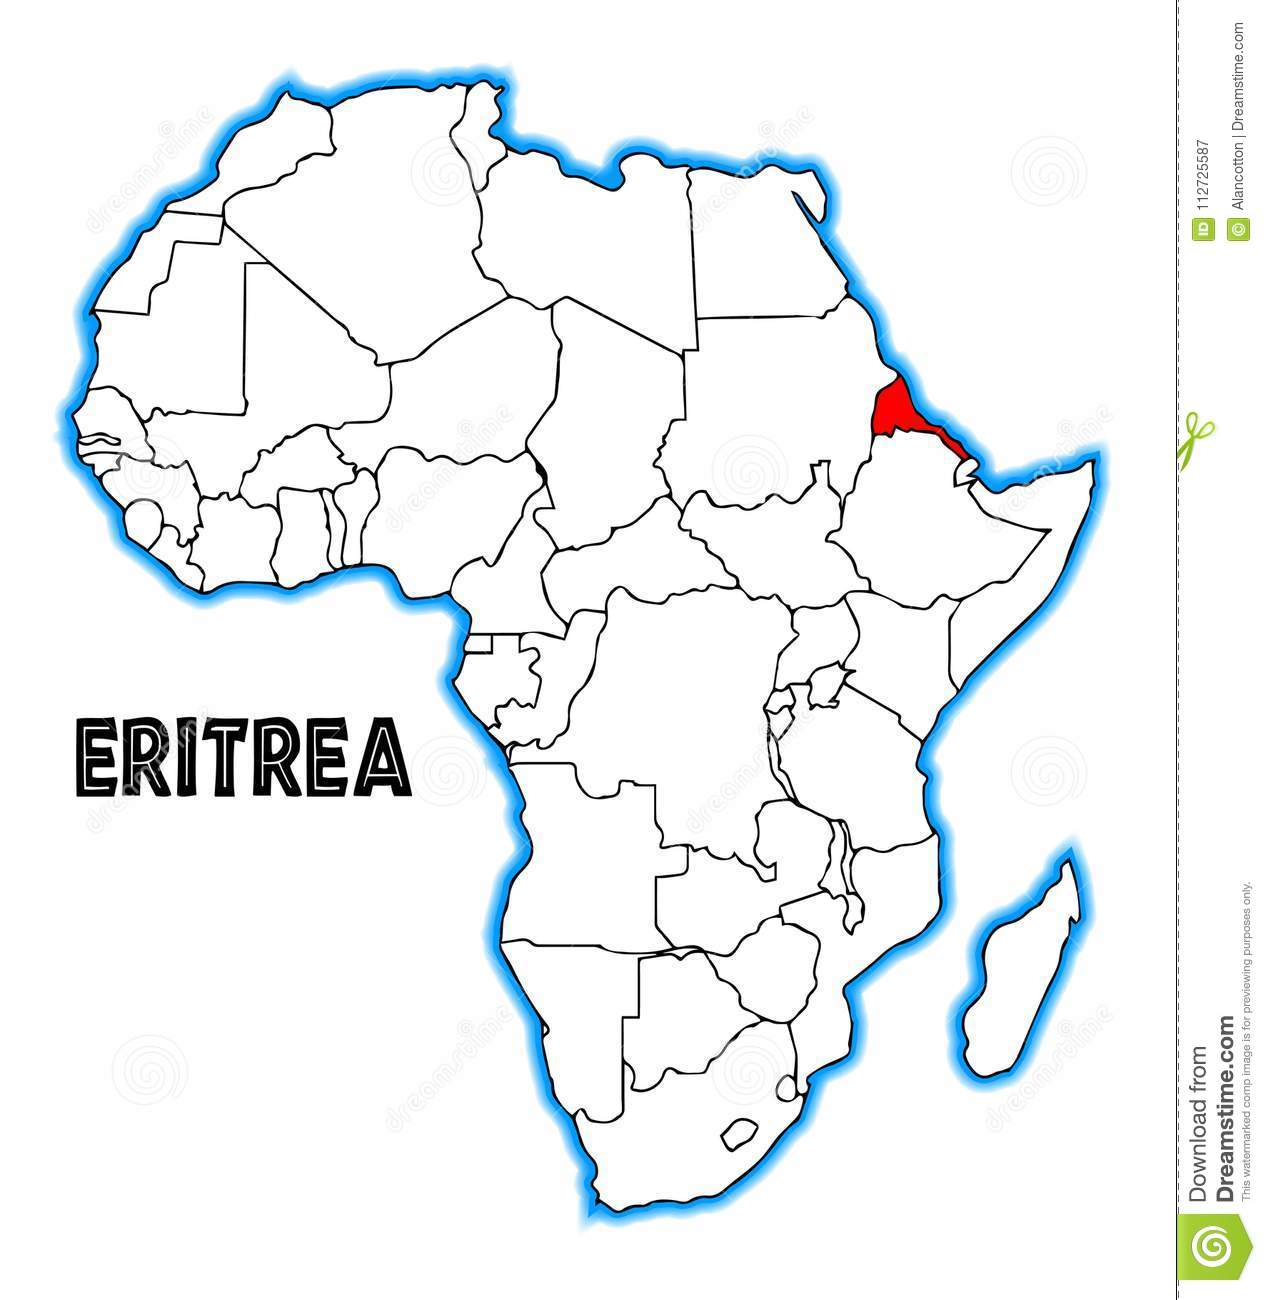 Map Of Africa Eritrea.Eritrea Africa Map Stock Vector Illustration Of Geography 112725587